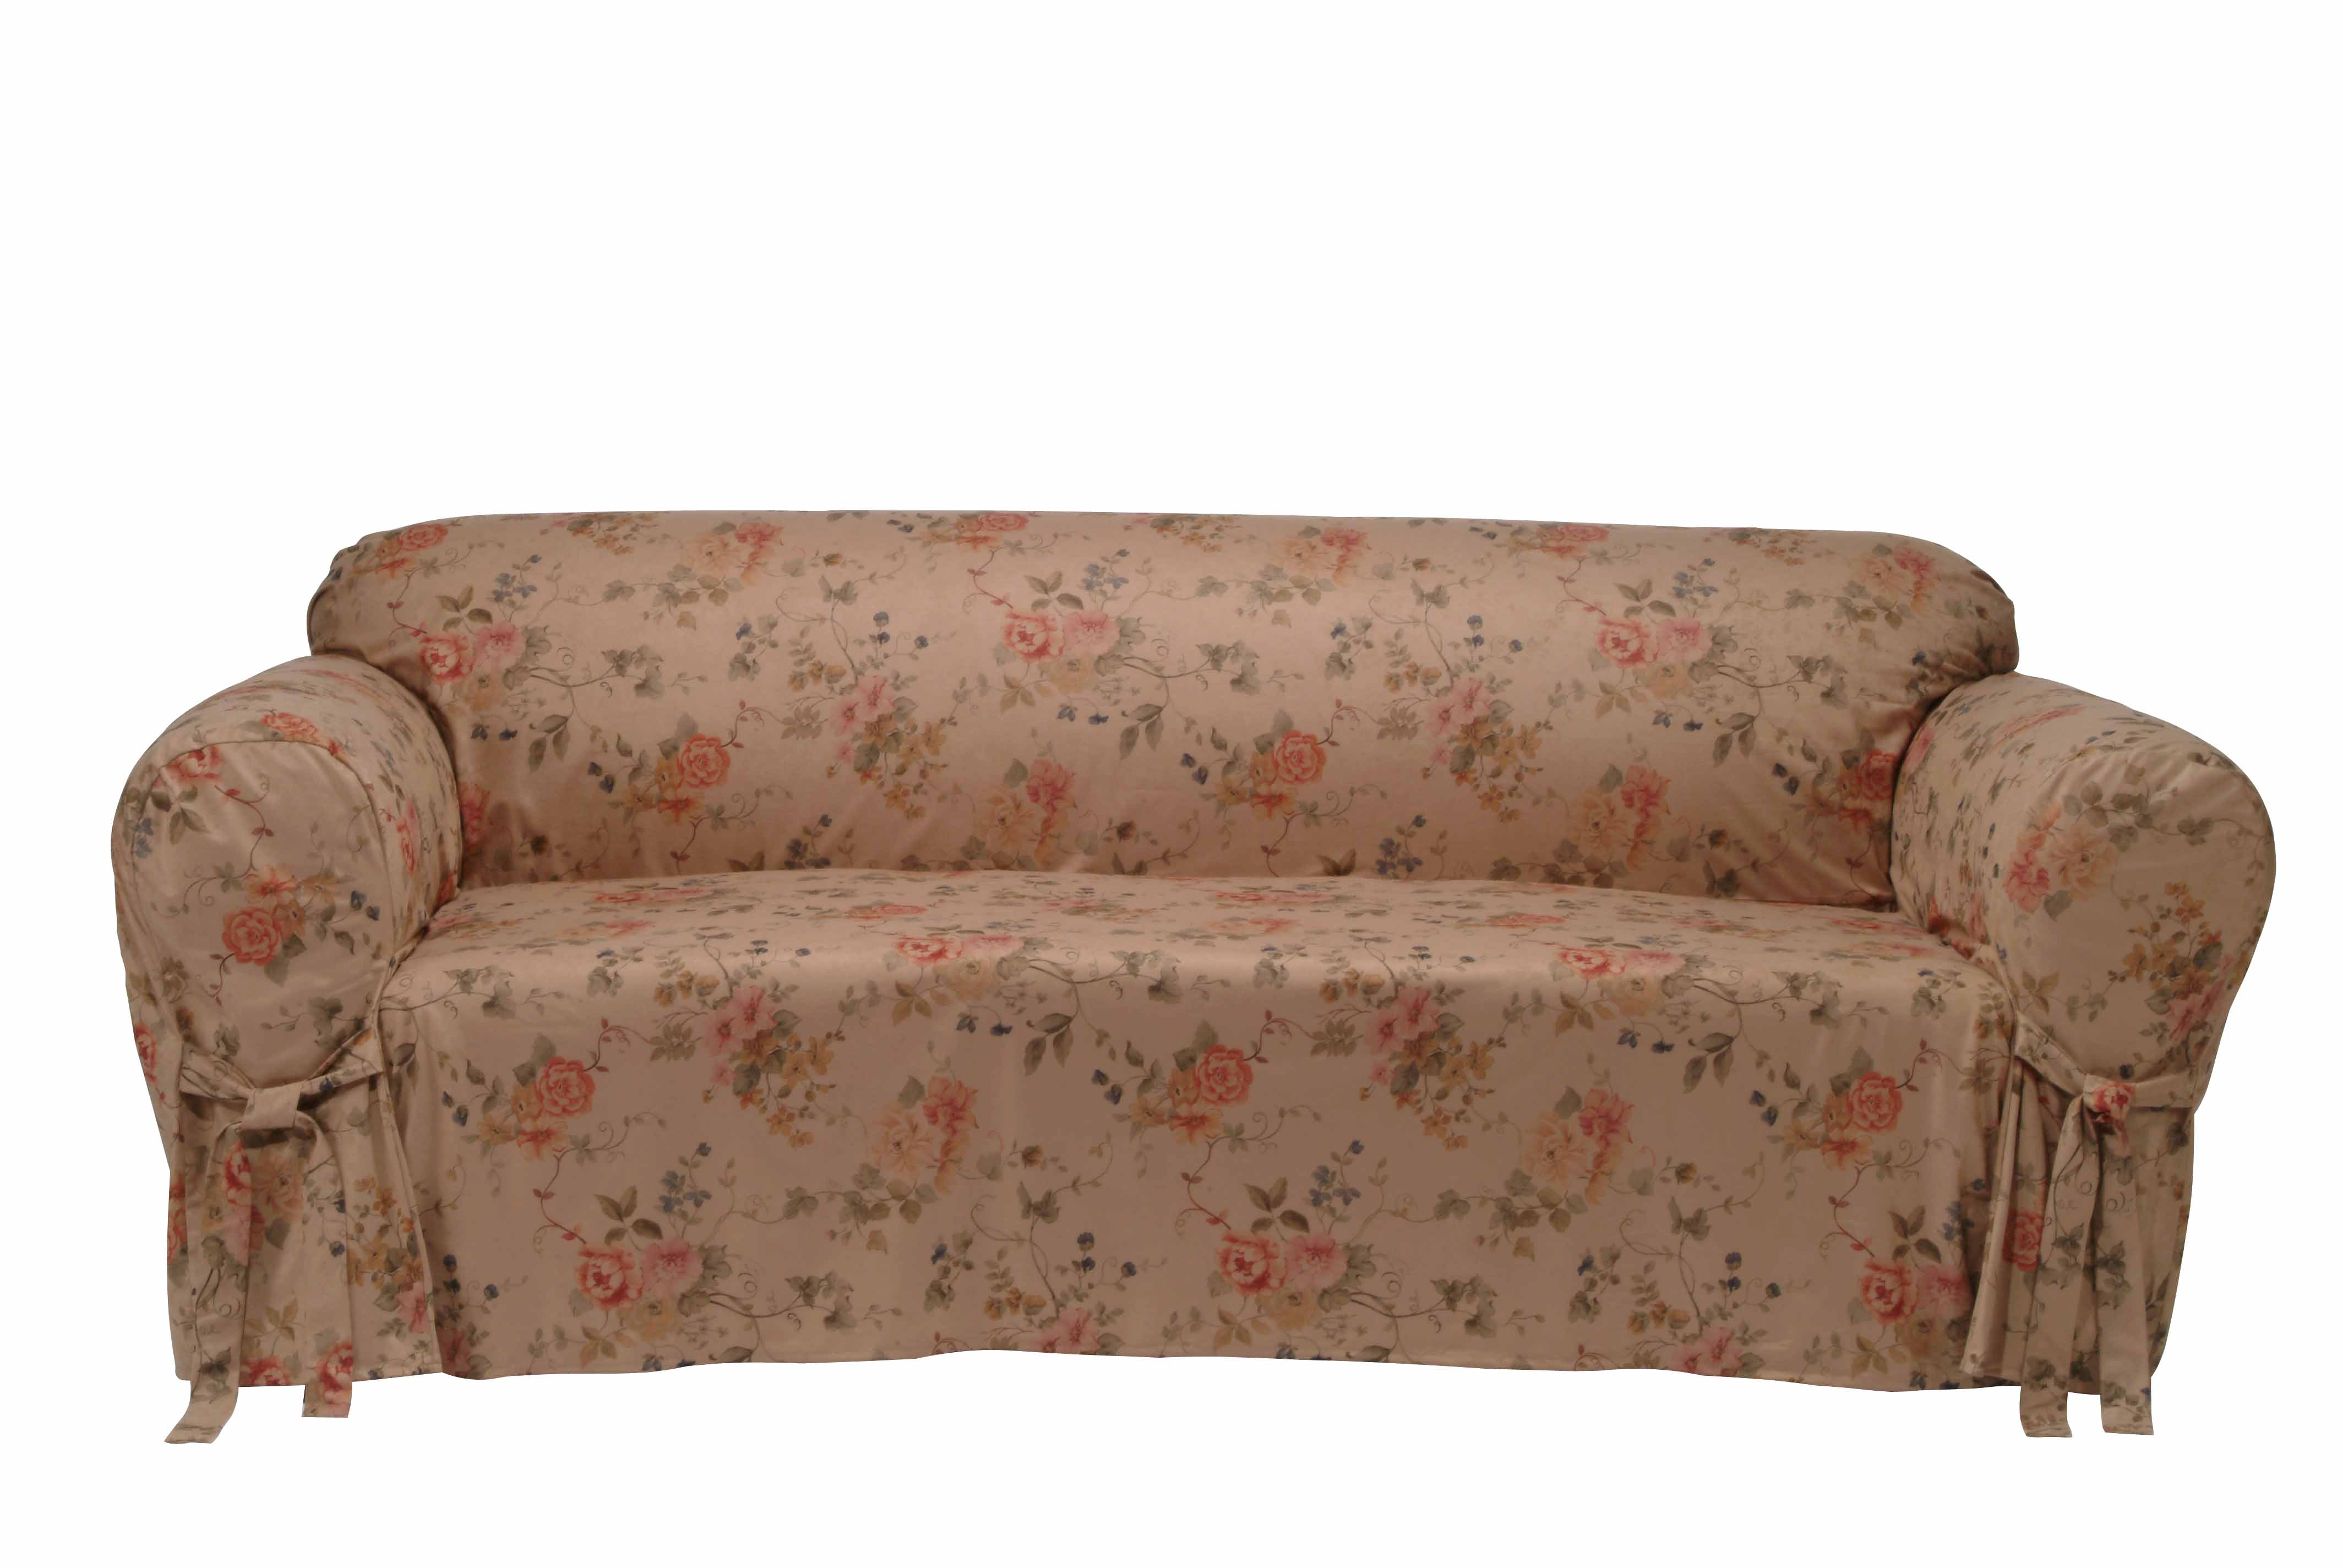 flower sofa covers small es configurable sectional walmart ultimate suede floral print slipcover free shipping